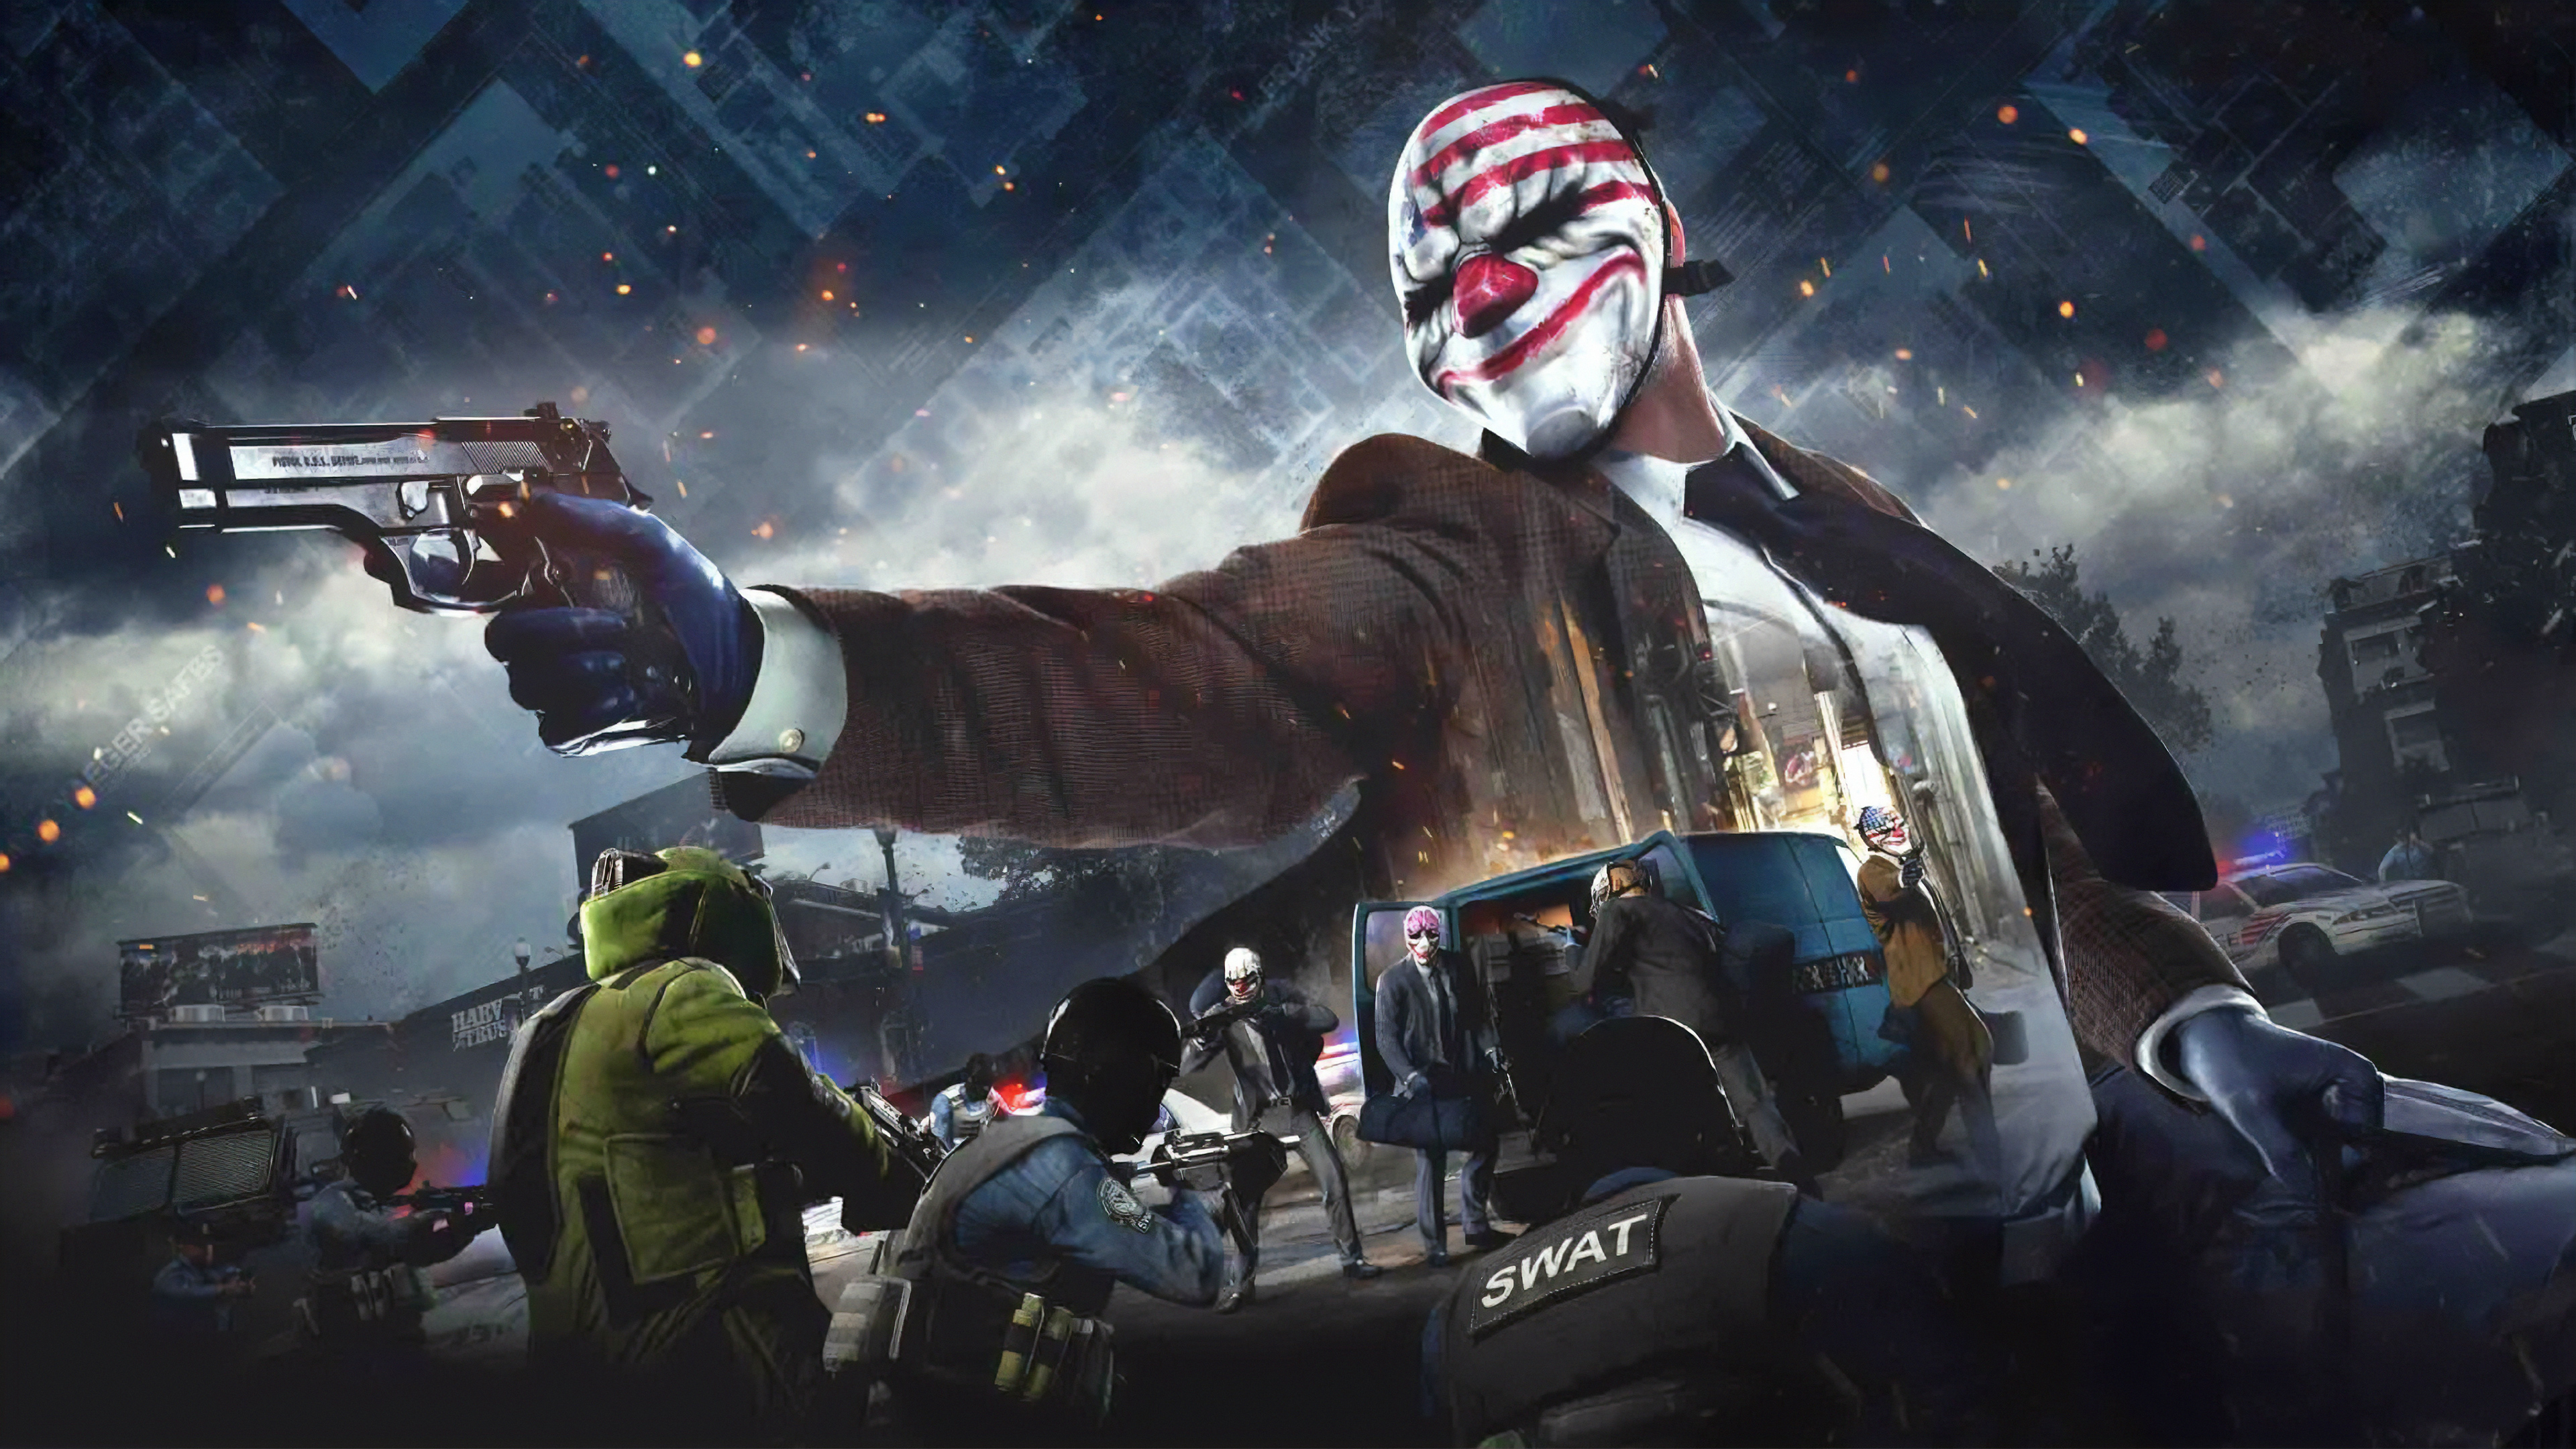 payday 1572370218 - Payday - payday 2 wallpapers, hd-wallpapers, games wallpapers, 4k-wallpapers